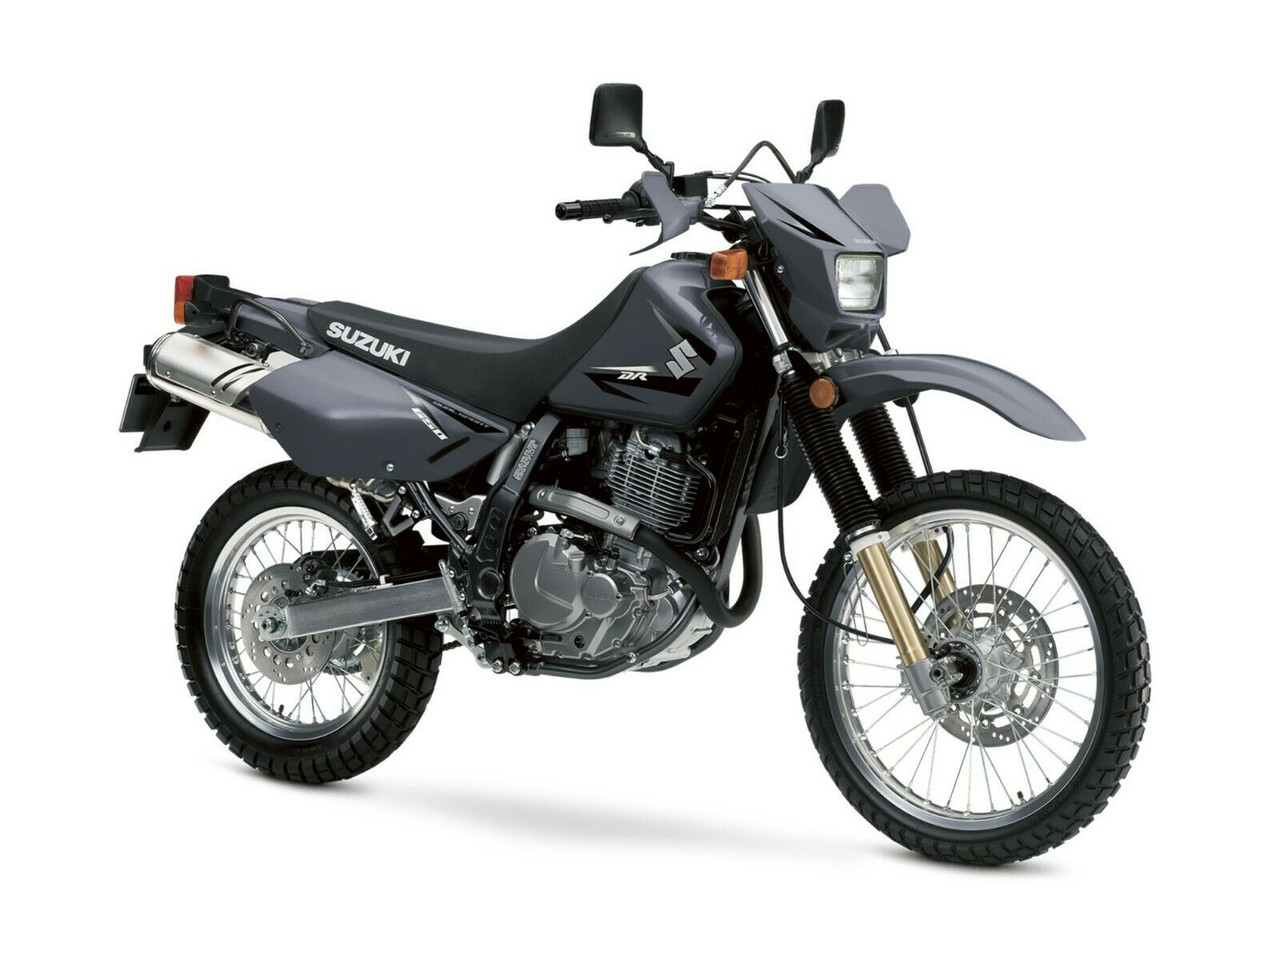 DR650 / DRZ400 Mirrors OEM Style